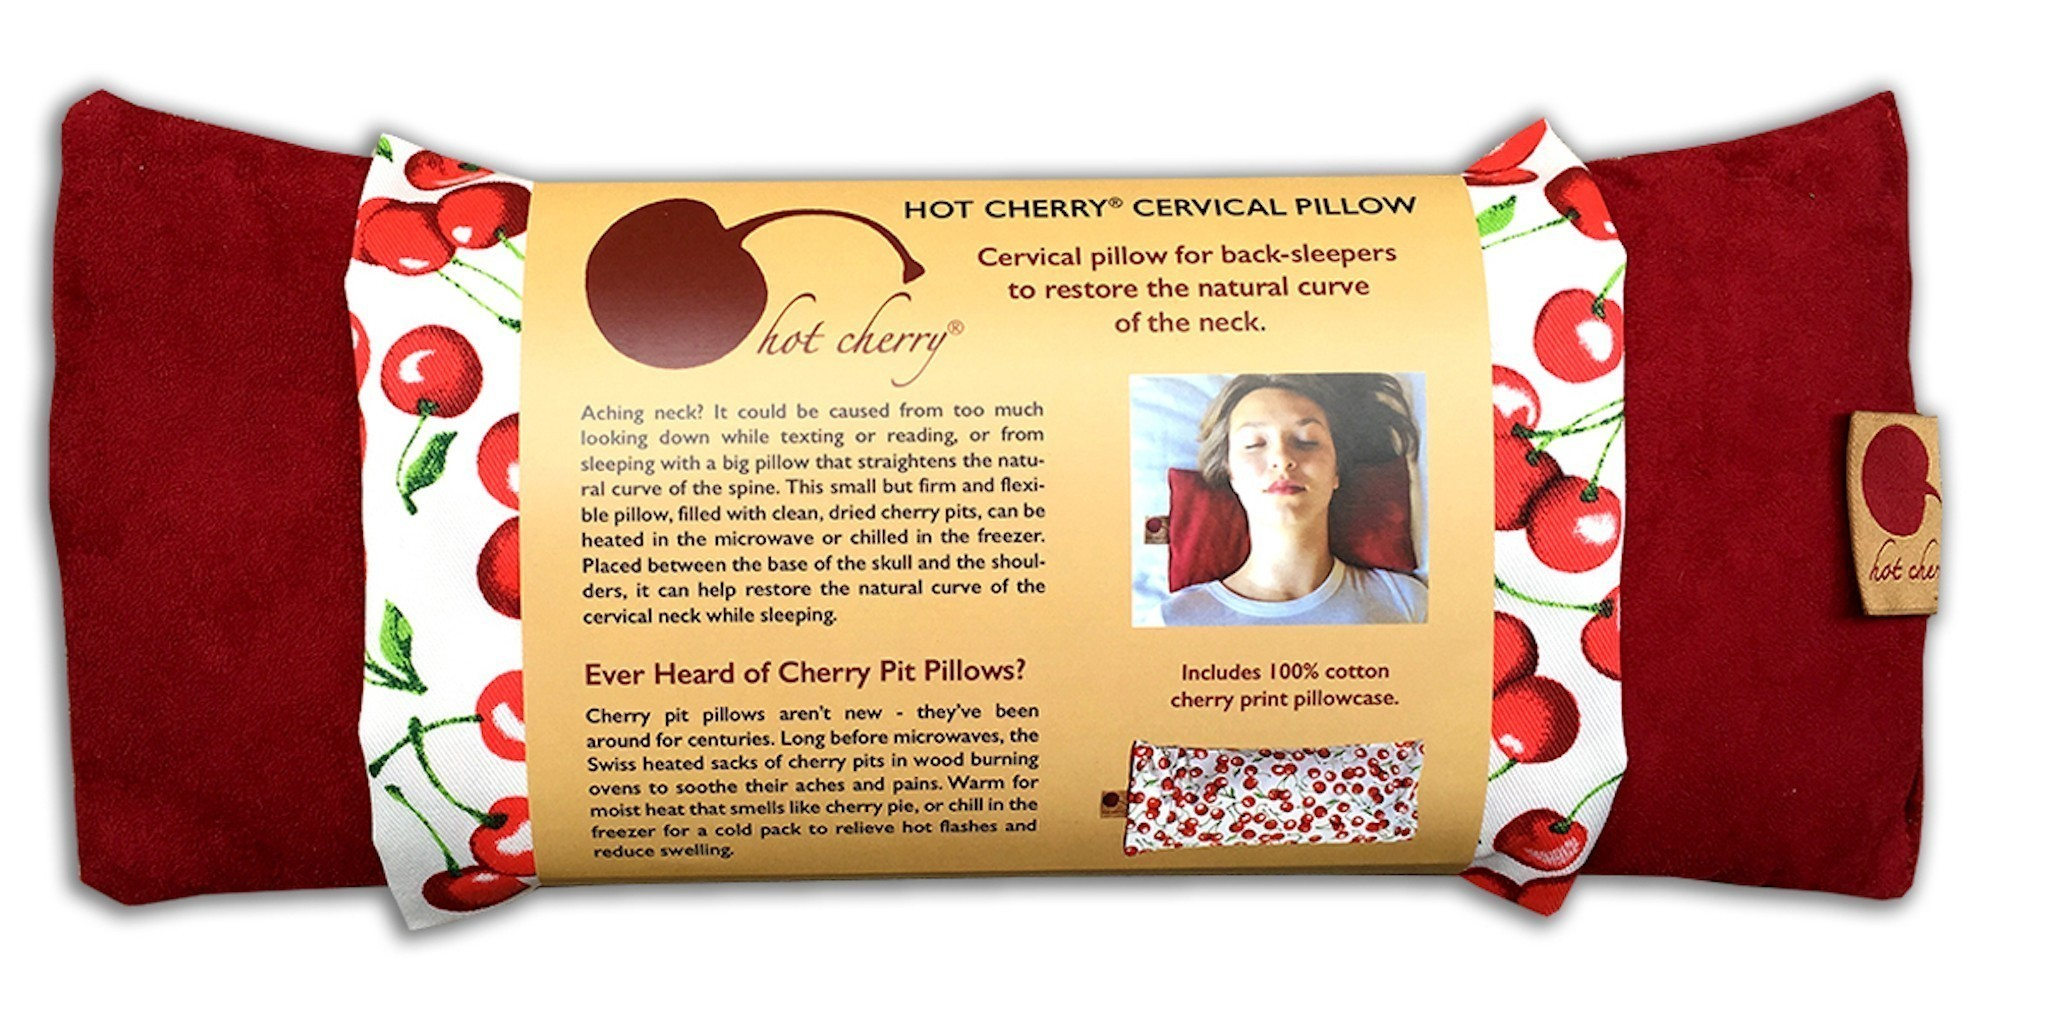 Hot Cherry 6M Red Maraschino Cervical Therapeutic Pillow With Case